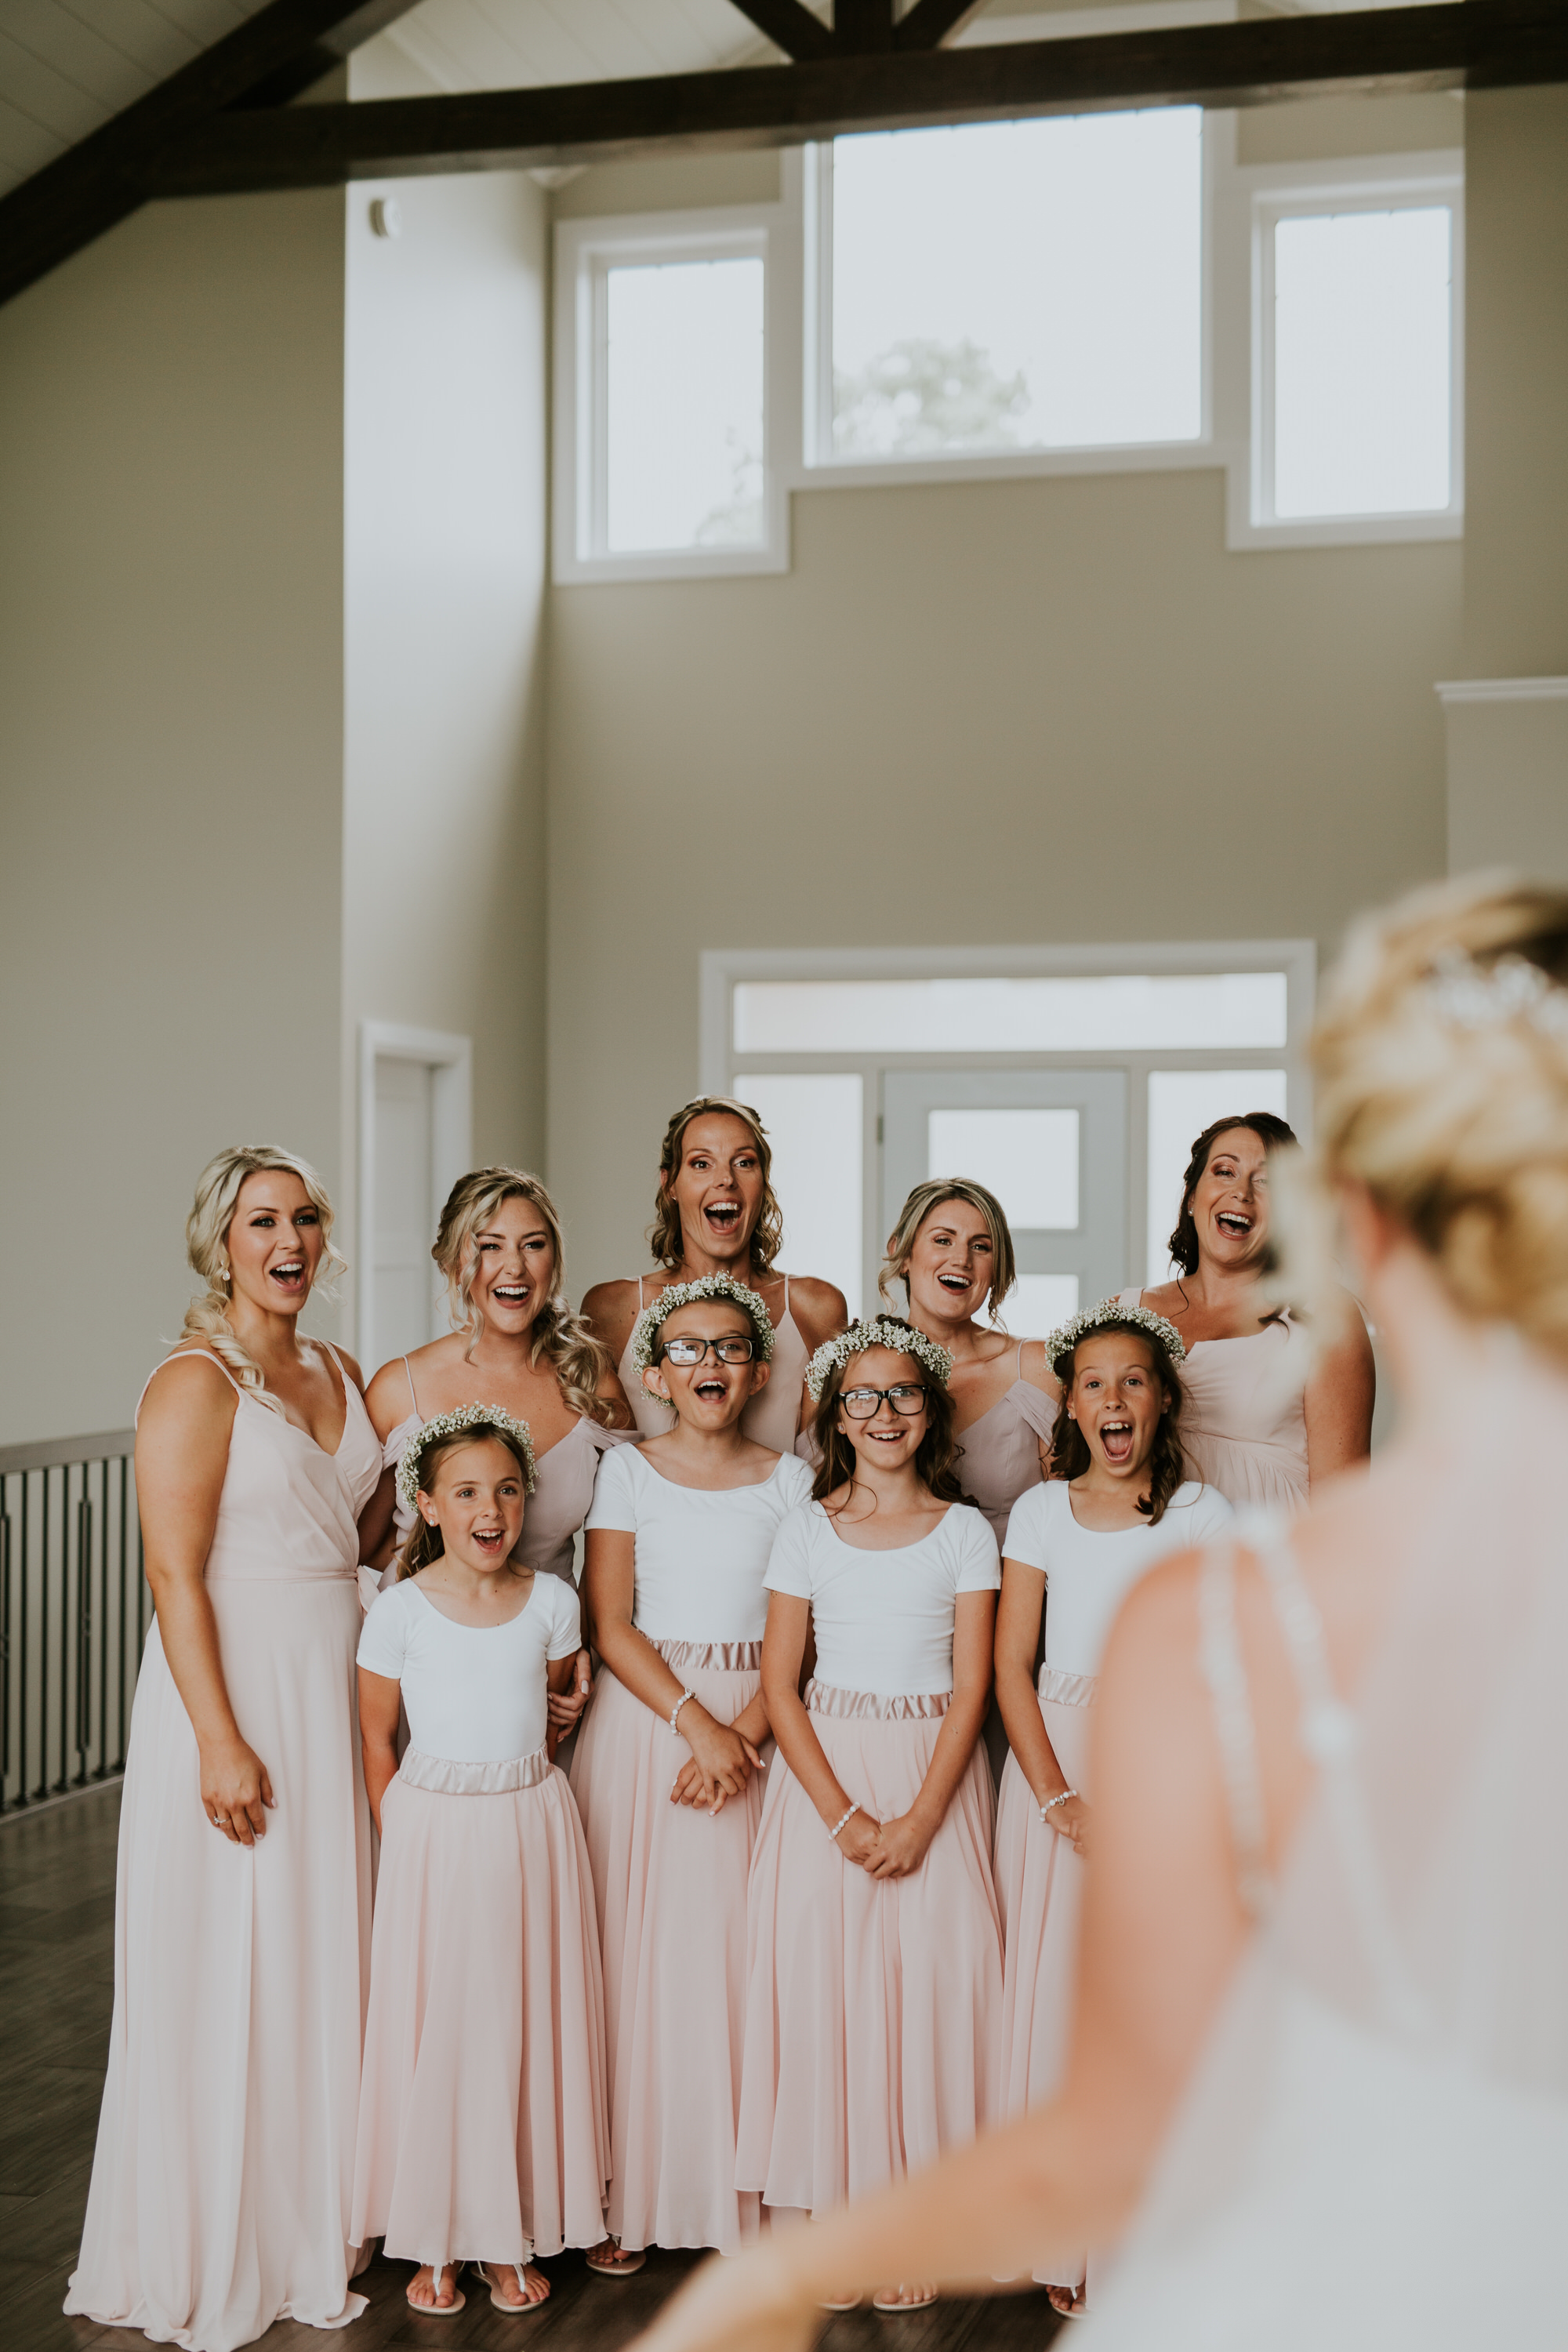 Elmhirst Resort Wedding - Bridal party first look